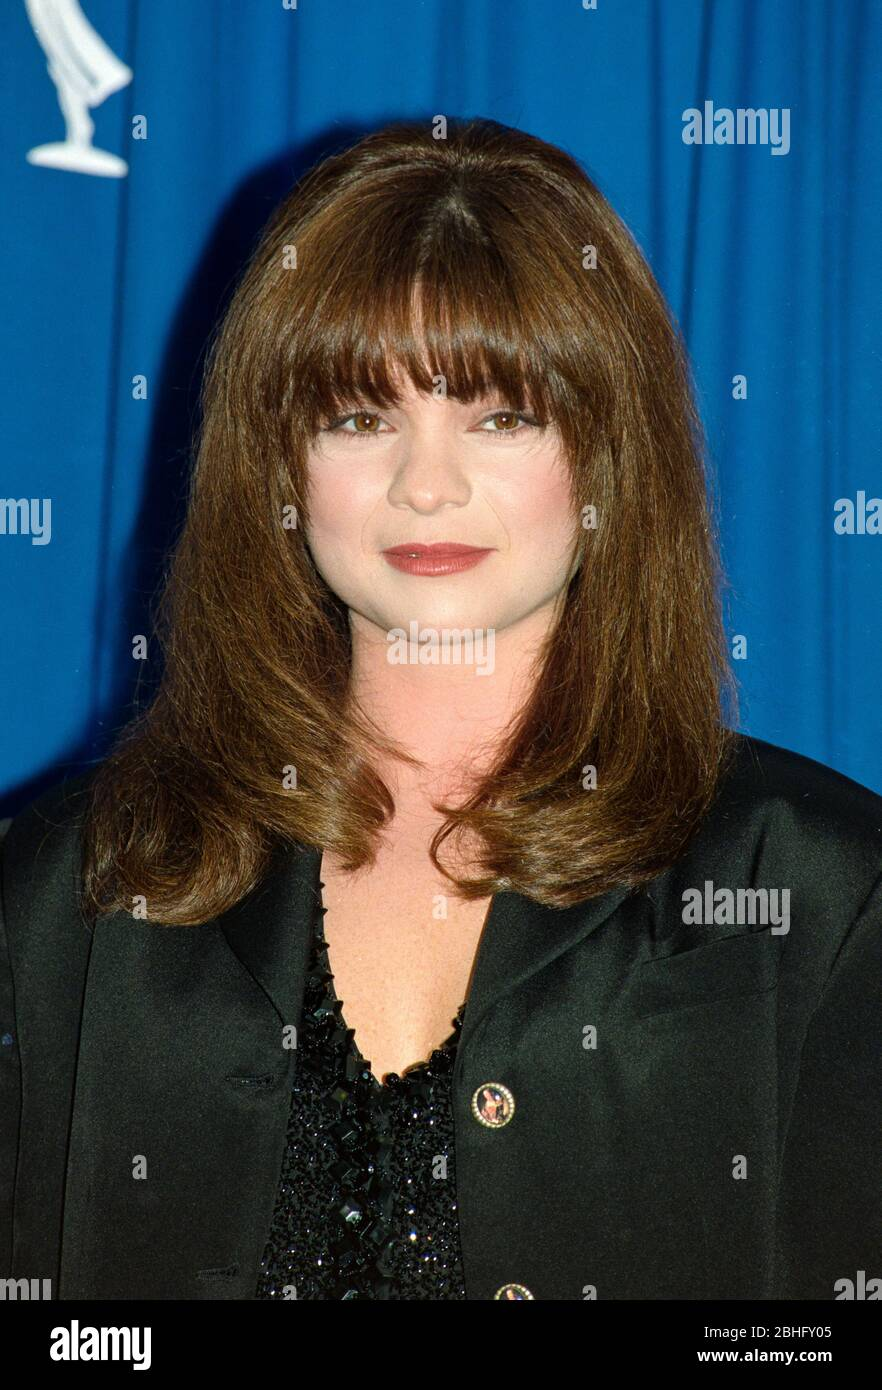 Actress Valerie Bertinelli High Resolution Stock Photography And Images Alamy